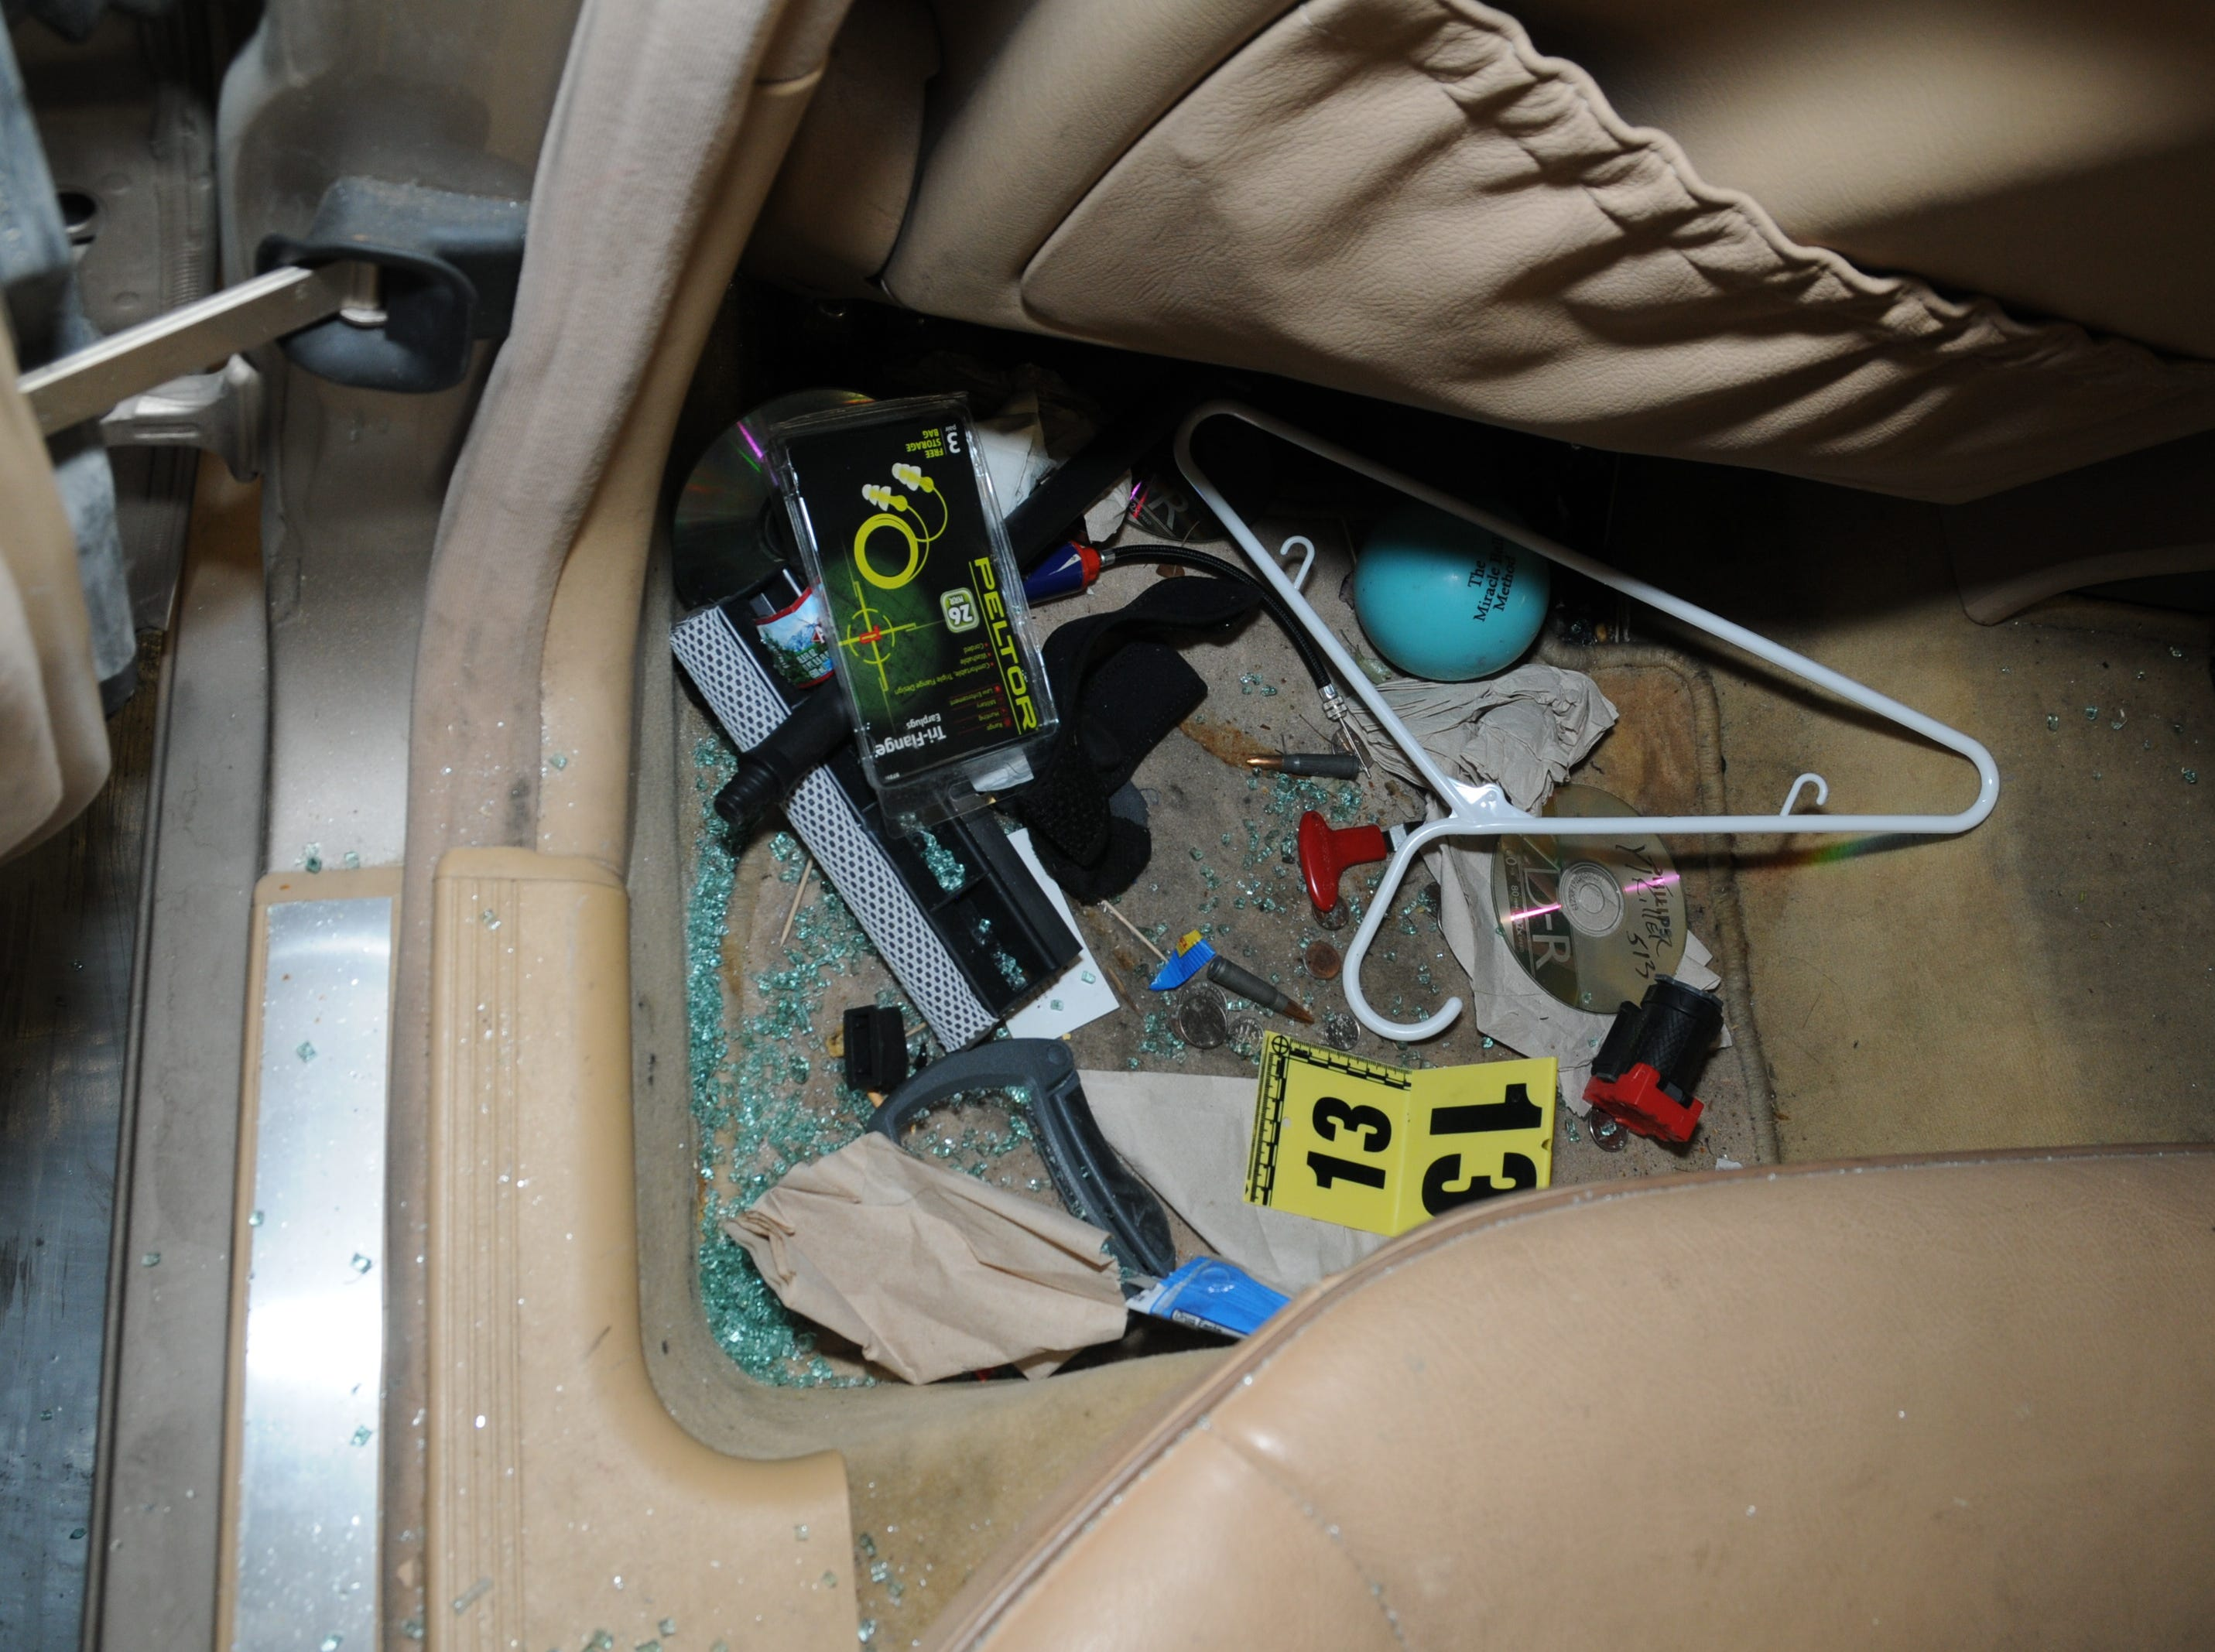 Scottsdale Police Department photo of the interior of Dwight Lamon Jones' car.  After a bitter divorce and failed years-long custody battle for his son, Jones went on a four-day shooting spree from May 31 to June 3, 2018, that left six people dead, before taking his own life.